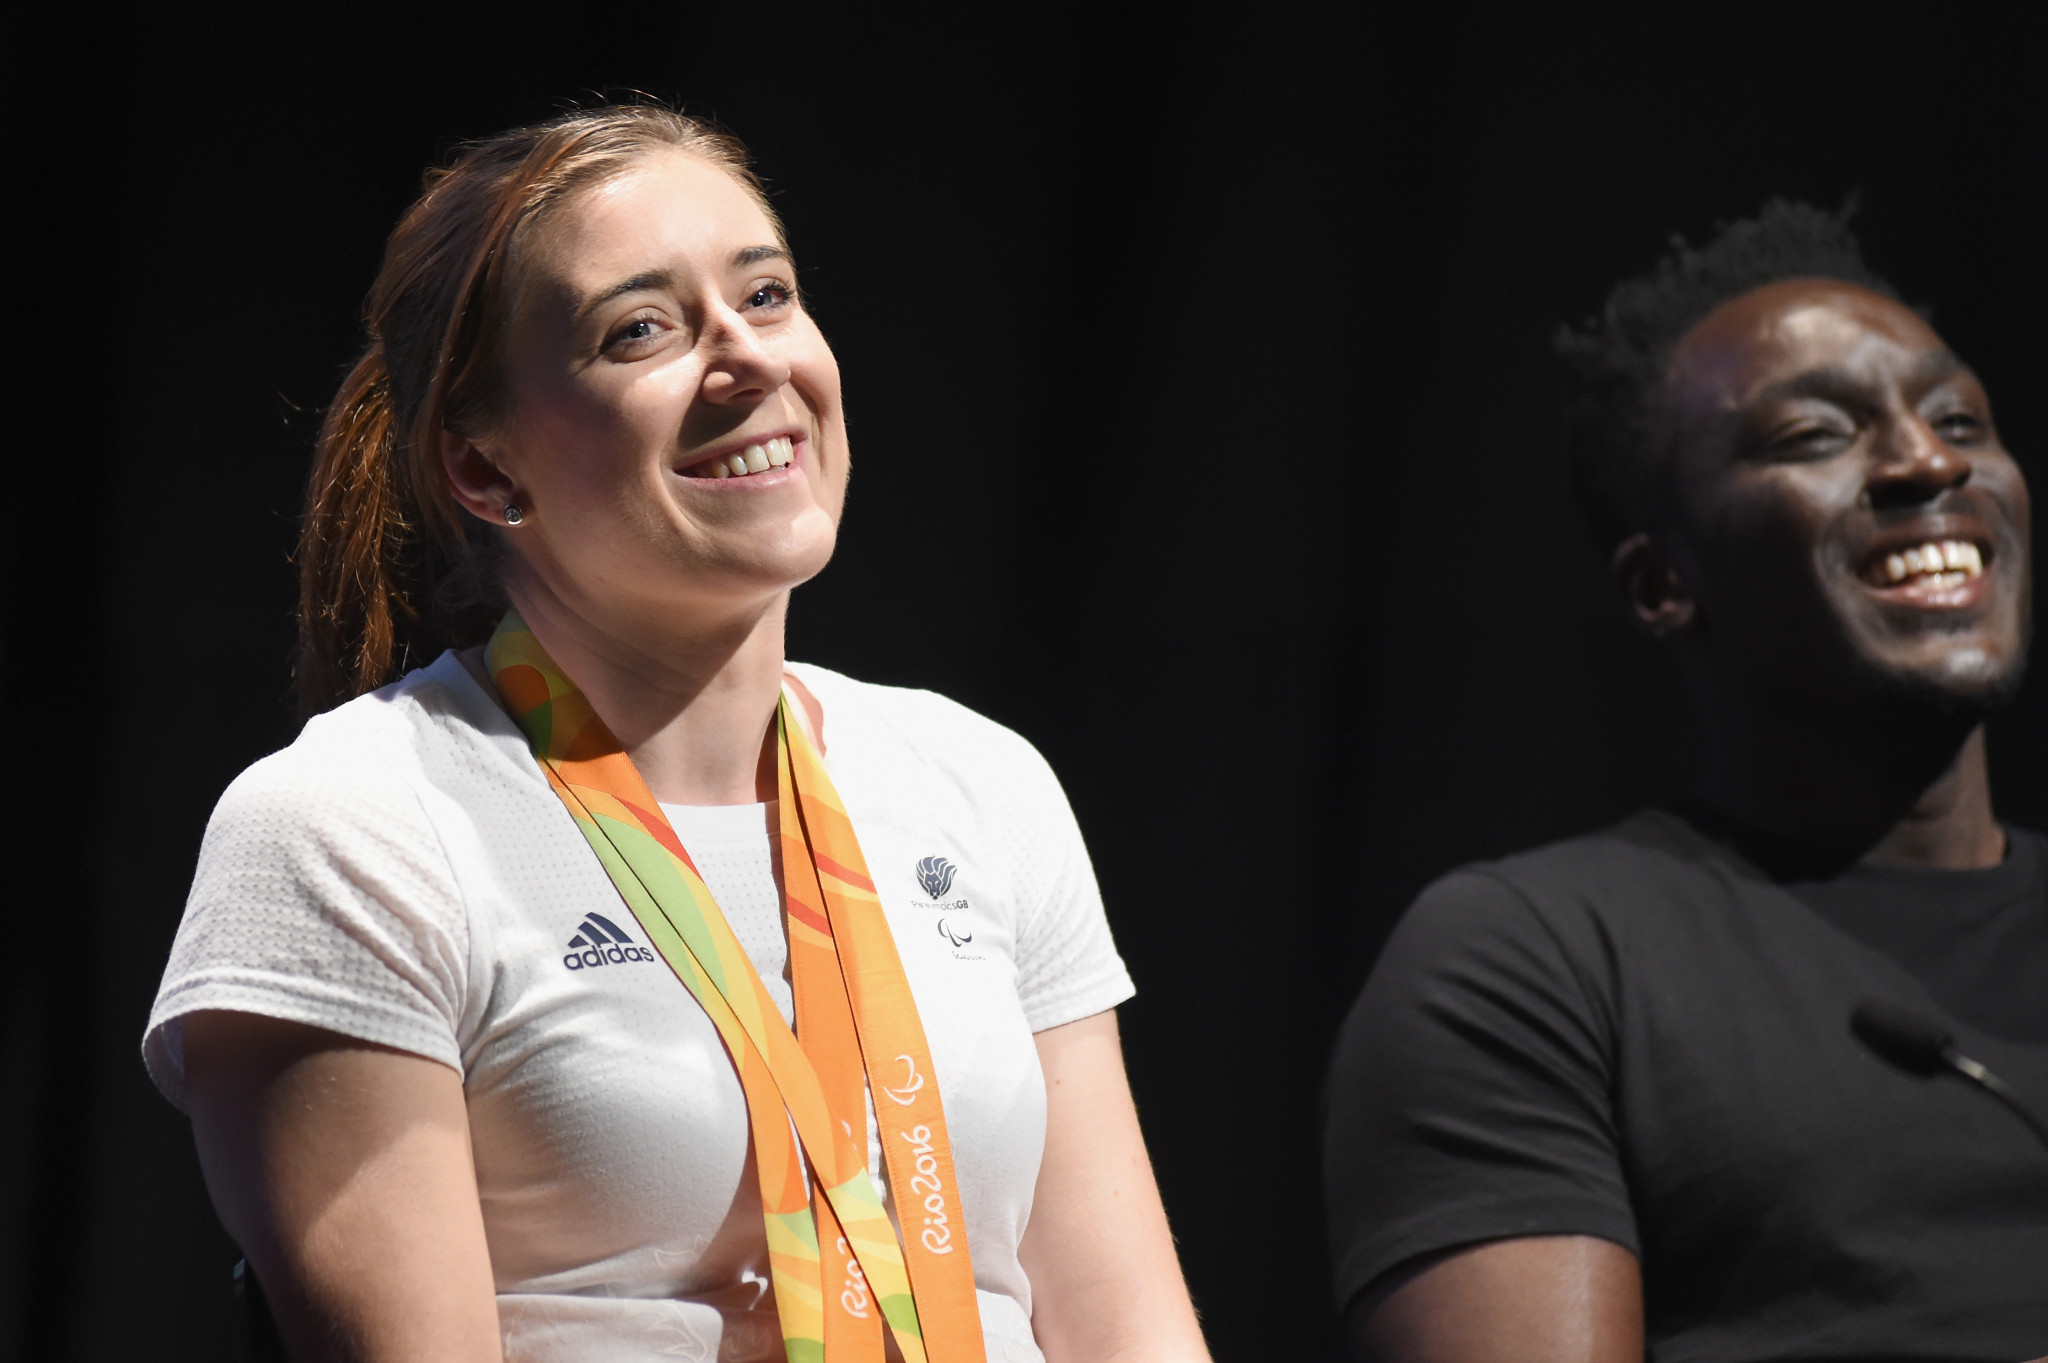 A notable name in the squad is Libby Clegg, who takes part at her first major championships for Britain since 2016 ©Getty Images